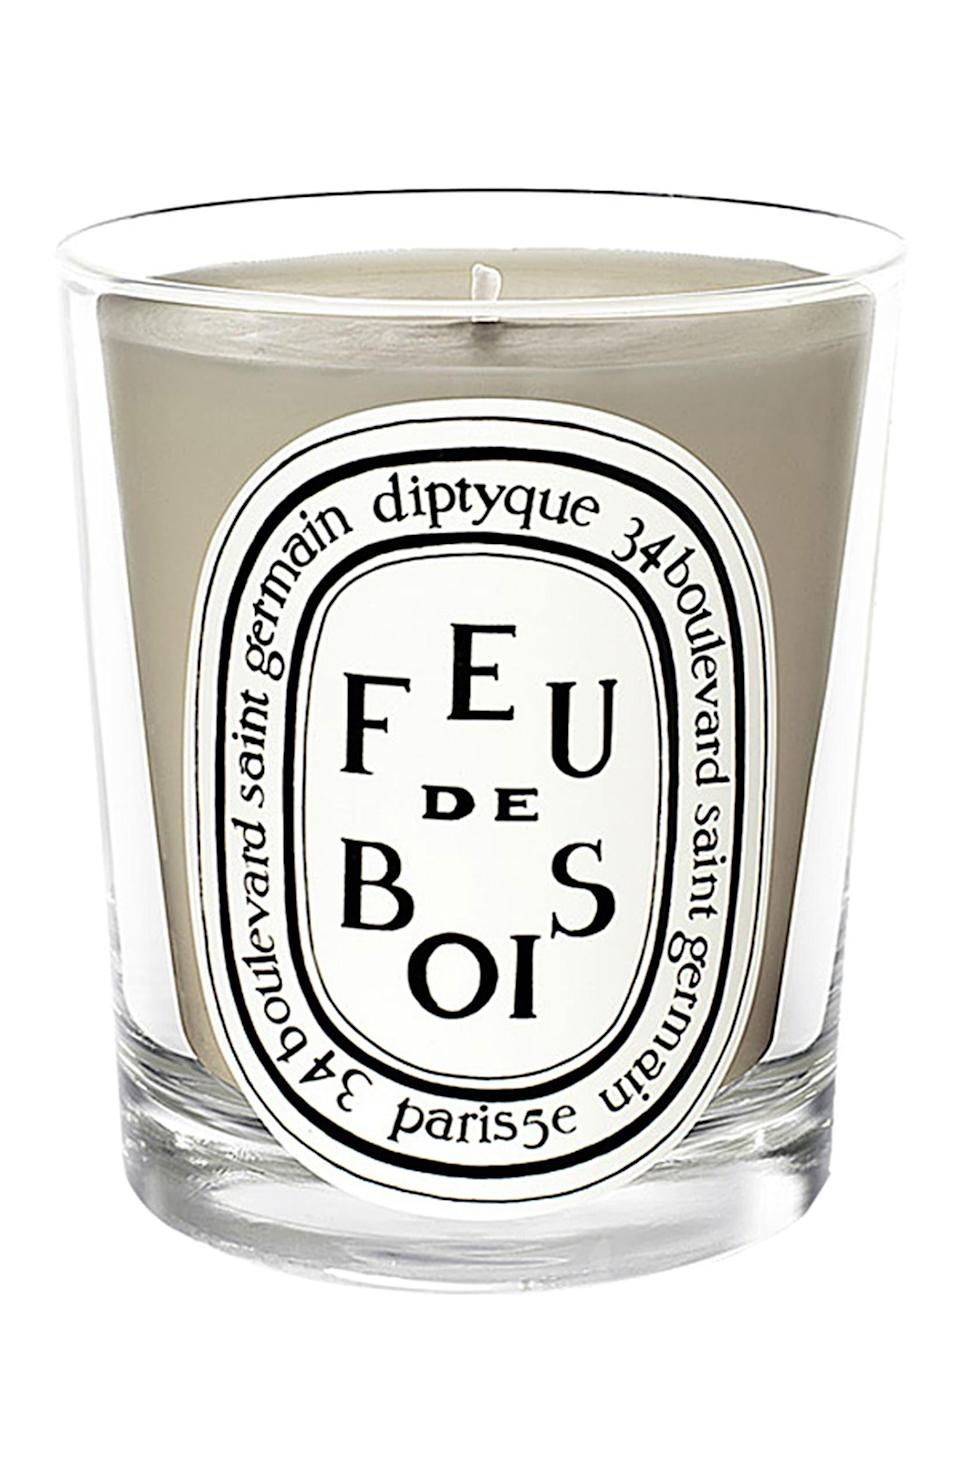 """<h3>Diptyque Feu De Bois Candle</h3><br>According to this Nordstrom review, this popular scent from Diptique can warm up the grayest of London days; """"Smells like a crackling fire and is my favorite candle to have burning during autumn and winter. Makes even my London home feel as though there's a crackling, cozy fire going and makes snuggling up on the sofa when it's too grim outside that much more of a pleasure. It's also one of the longer lasting candle scents from Diptyque. I always ask for this for Christmas!""""<br><br><strong>Diptyque</strong> Feu de Bois Candle 2.4oz, $, available at <a href=""""https://go.skimresources.com/?id=30283X879131&url=https%3A%2F%2Fshop.nordstrom.com%2Fs%2Fdiptyque-feu-de-bois-wood-fire-scented-candle%2F3228001"""" rel=""""nofollow noopener"""" target=""""_blank"""" data-ylk=""""slk:Nordstrom"""" class=""""link rapid-noclick-resp"""">Nordstrom</a>"""